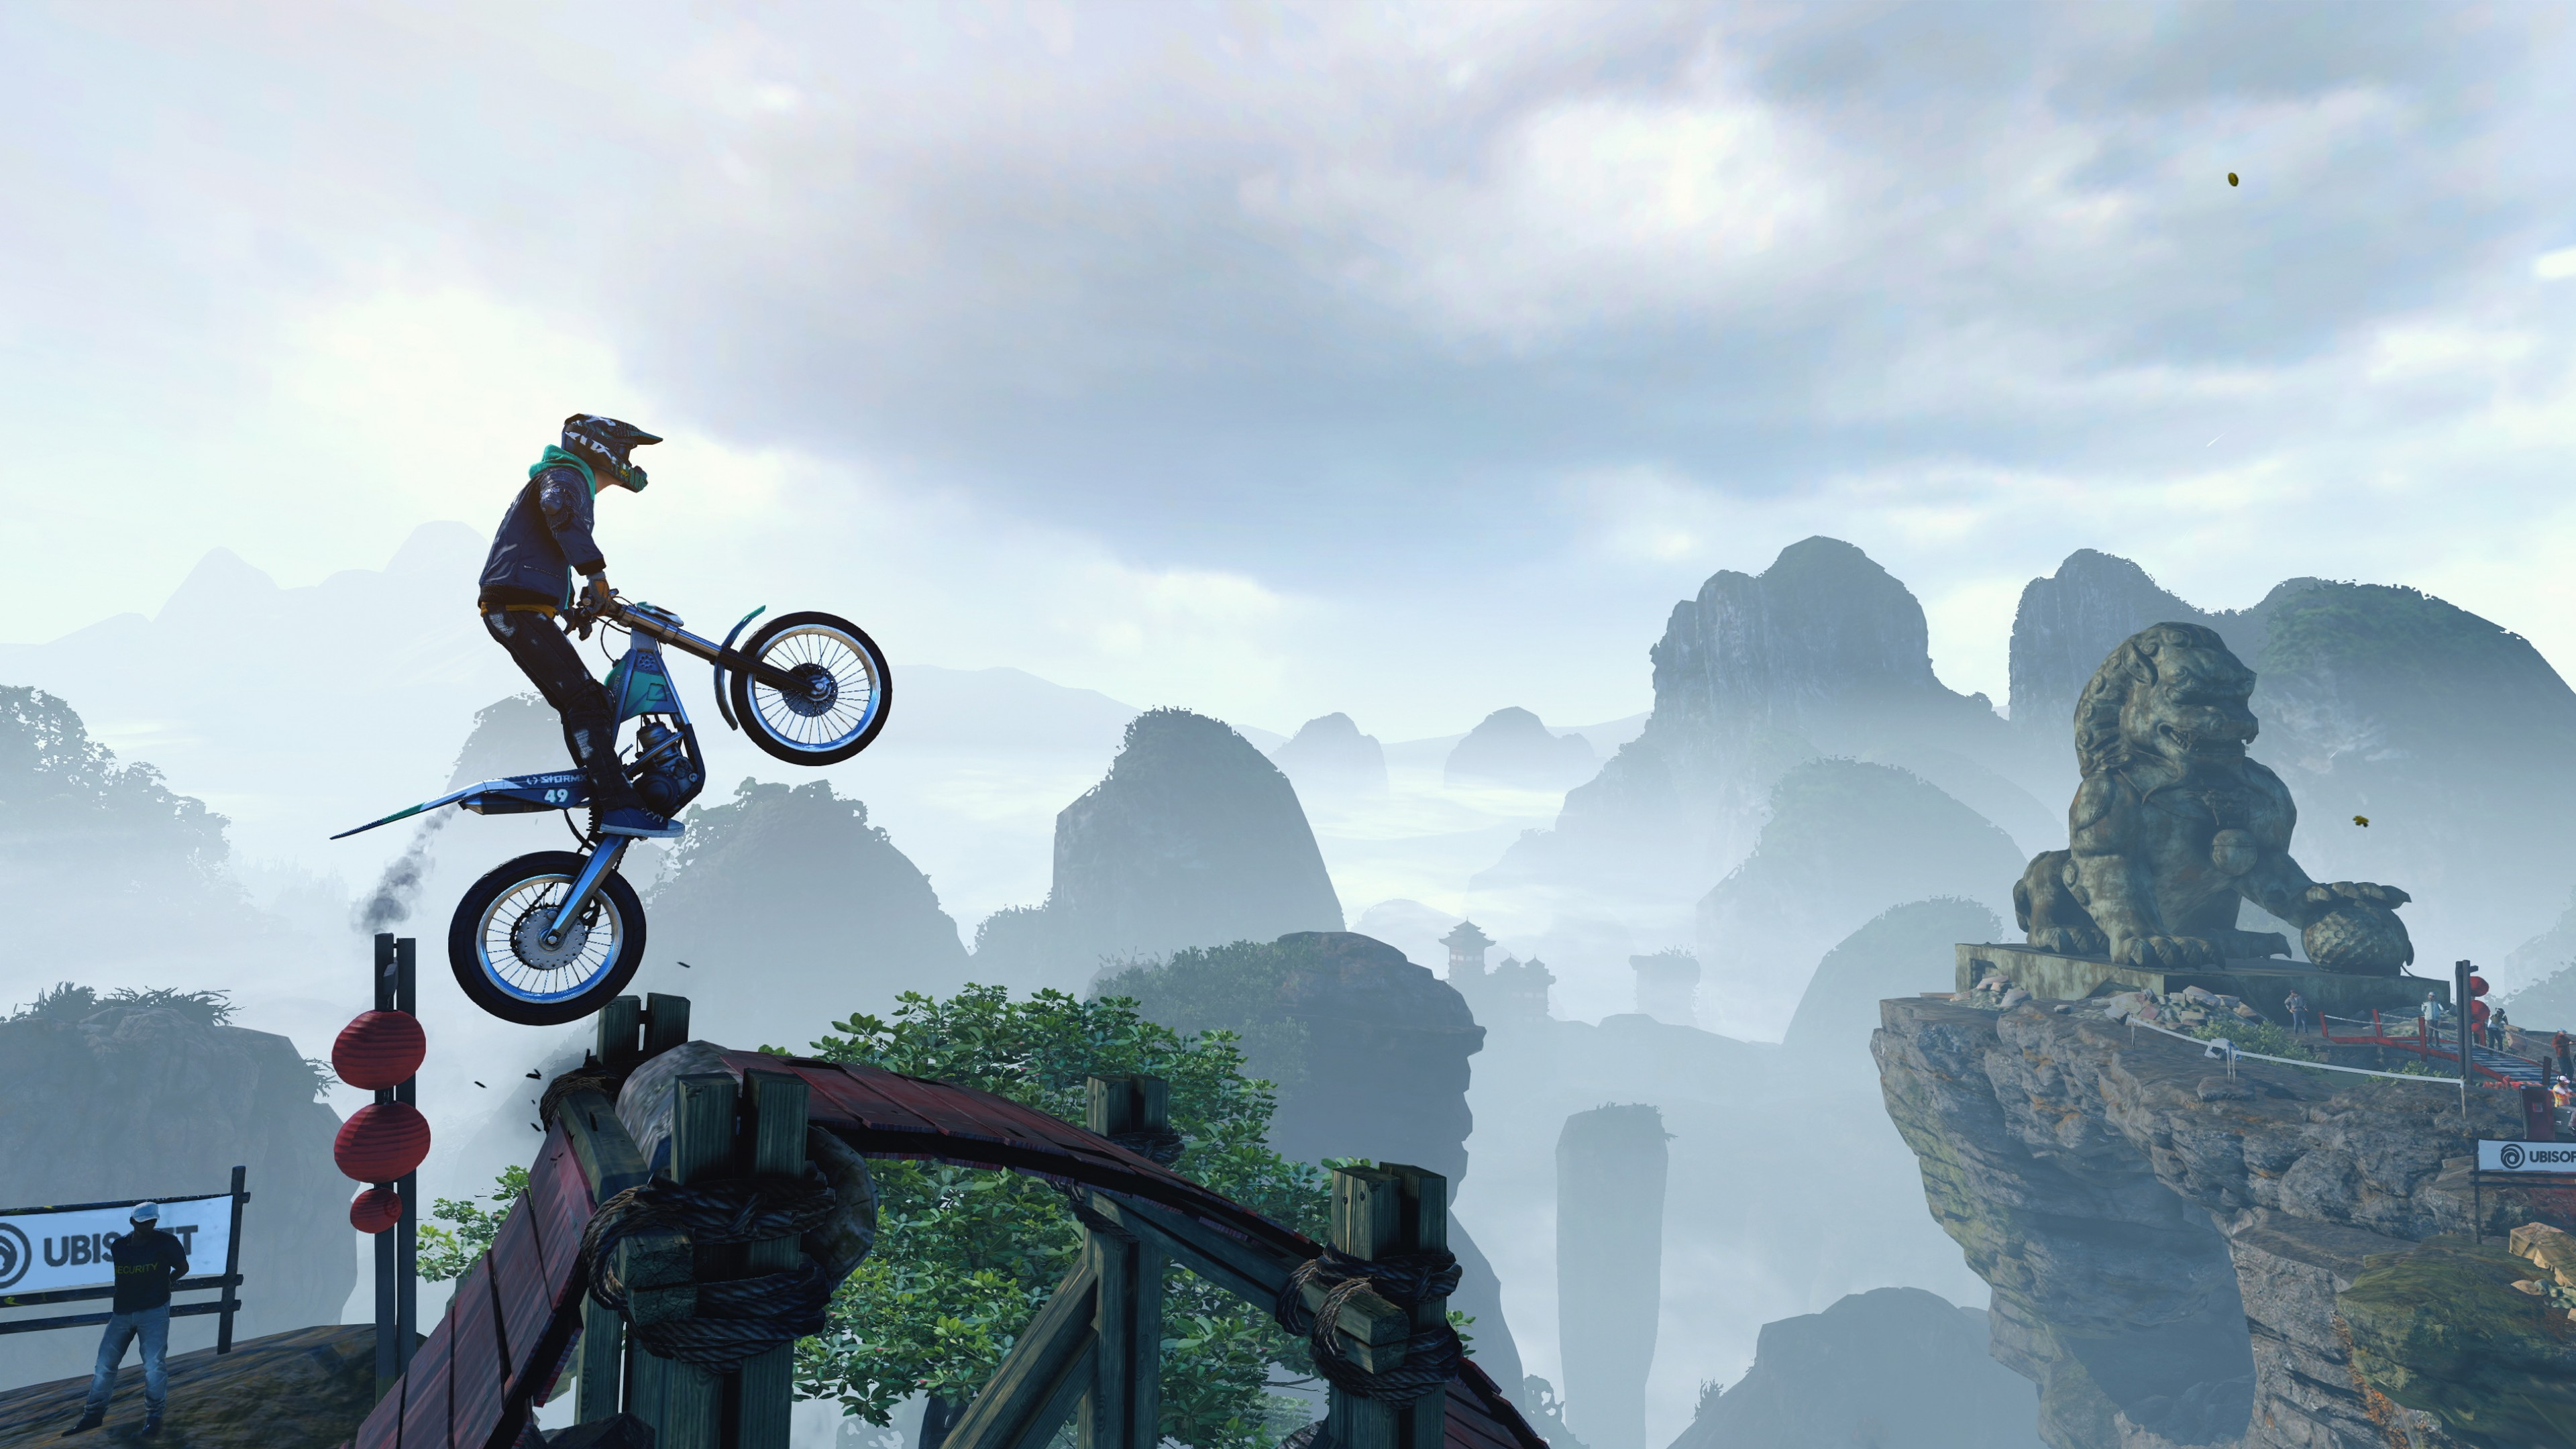 Wallpaper Trials Rising E3 2018 screenshot 4K Games 19110 3840x2160